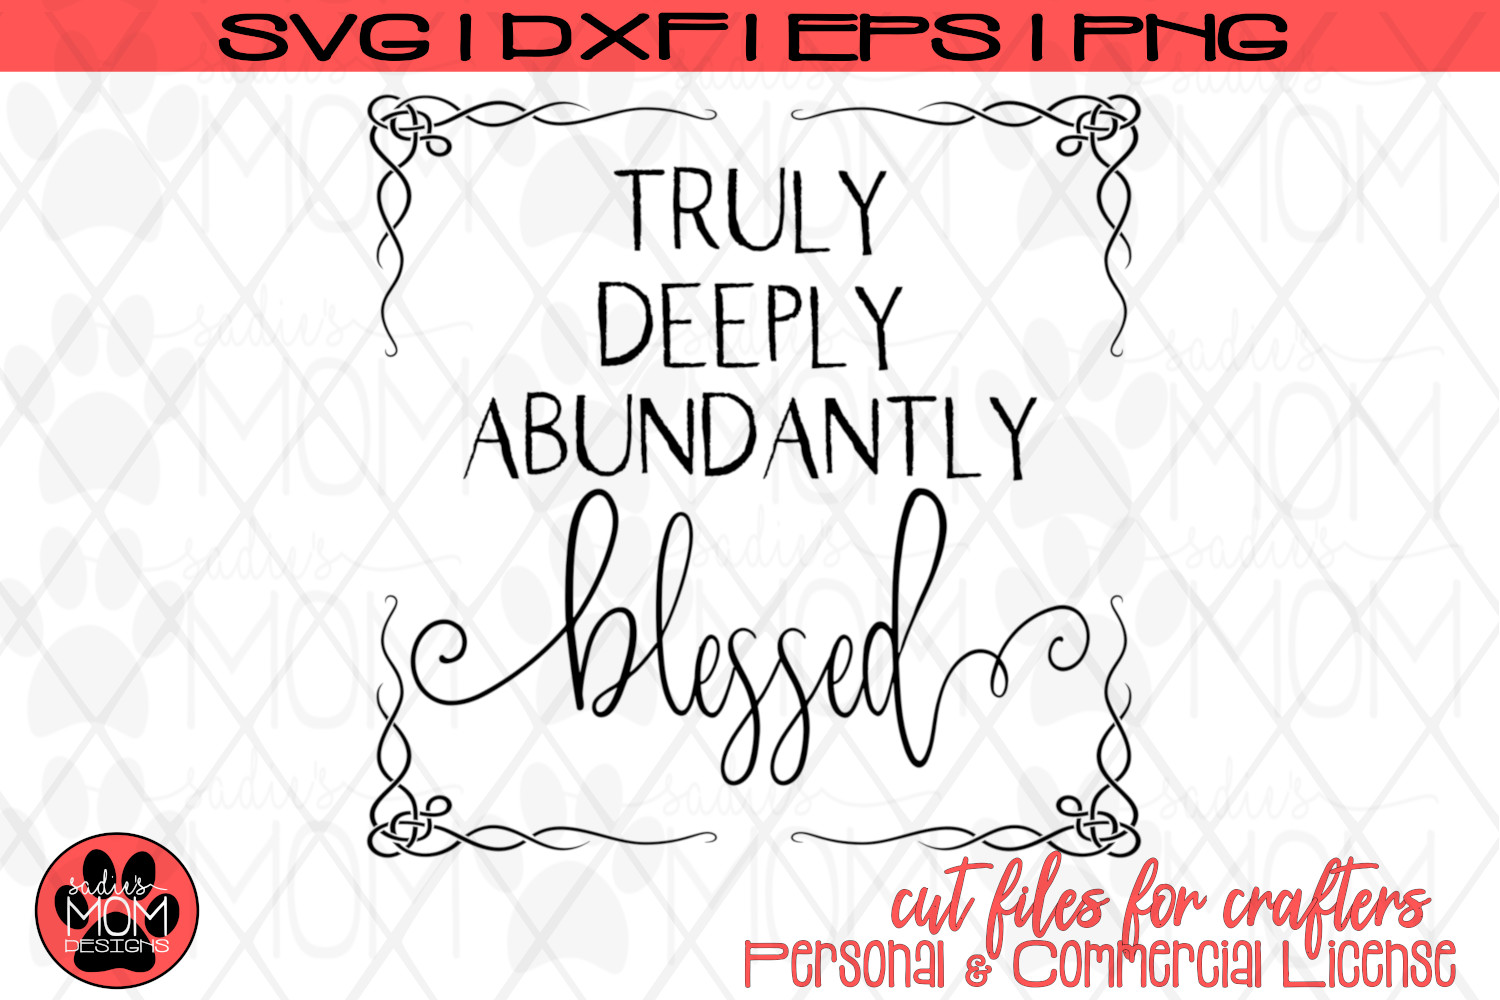 Truly Deeply Abundantly Blessed   Spiritual SVG Cut File example image 2